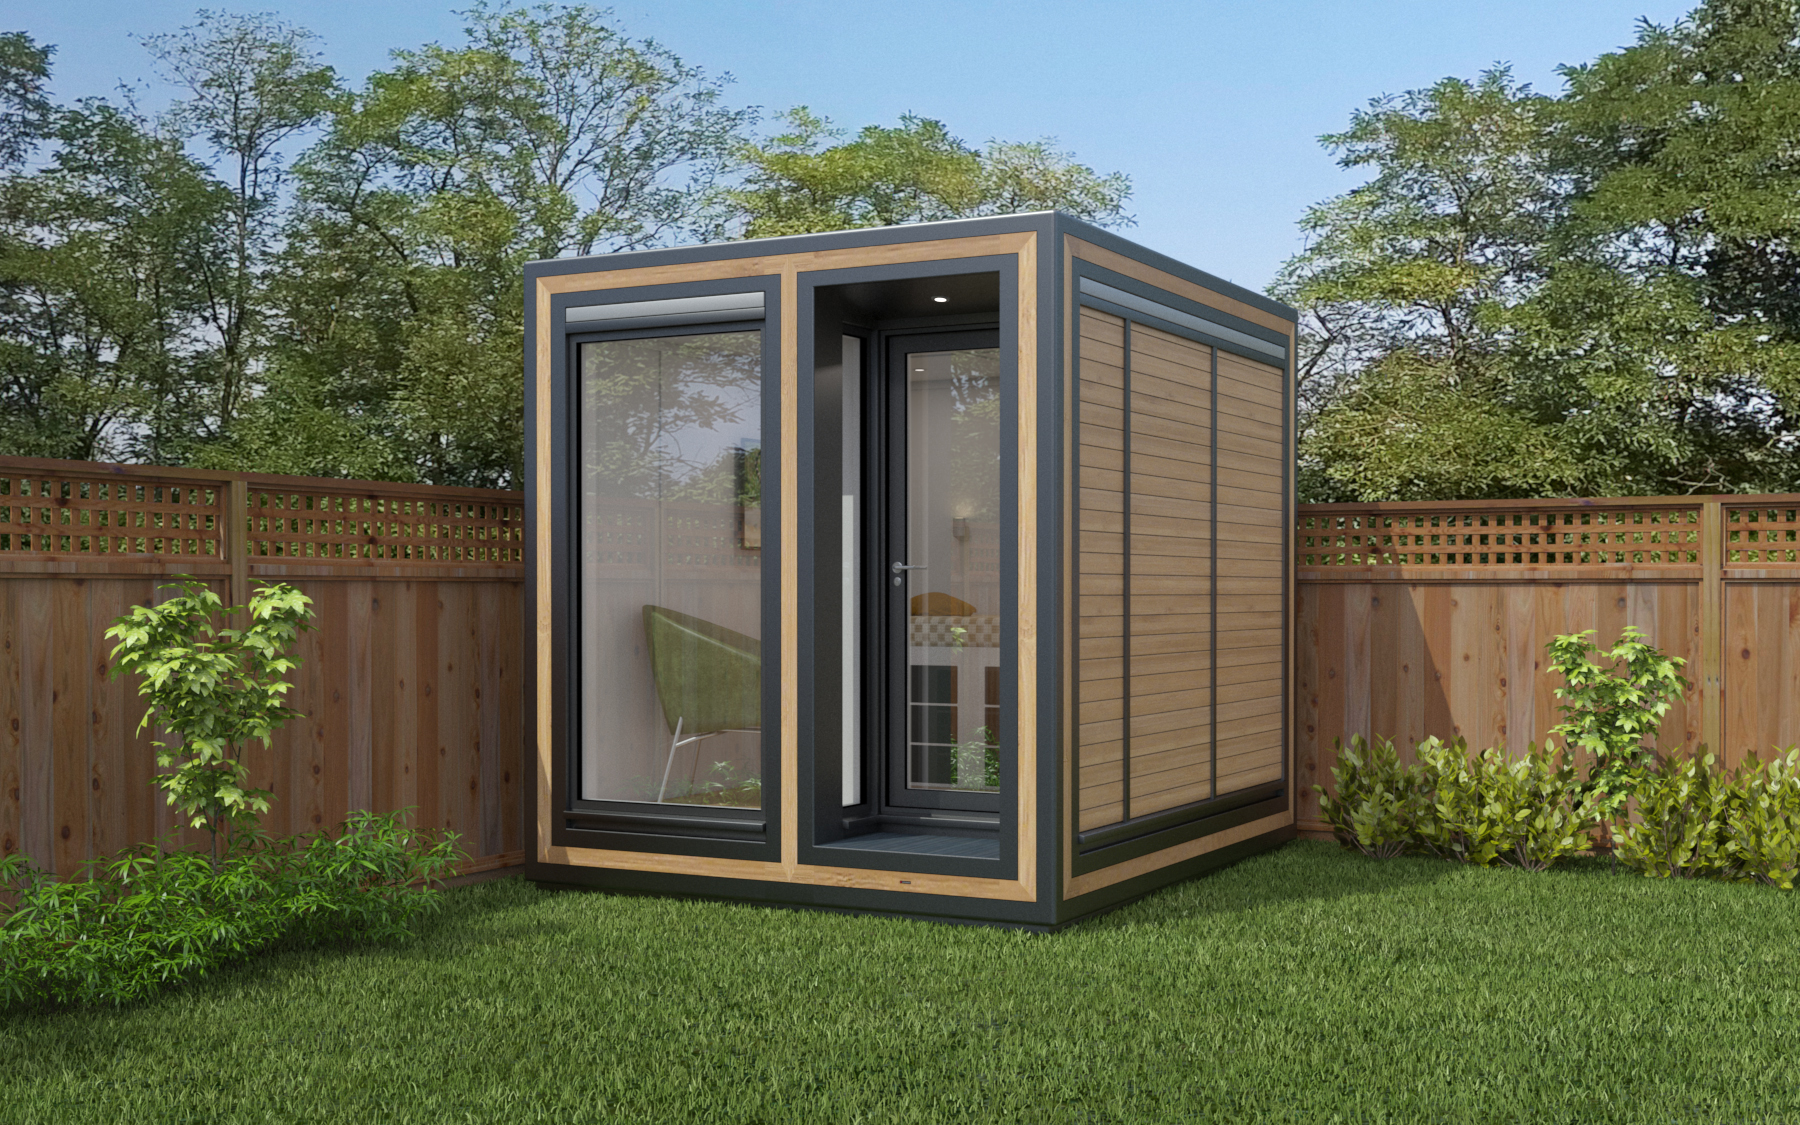 ZEDBOX 225  (2 x 2.5)  Internal Size: 2117 x 2720  External Size: 2587 x 3190  Bed Options: Single  Kitchen Options: N/A  Wet Room Options: Yes  Portico: No  Price:  £15,000    Optional Extras    Request Zedbox Catalogue